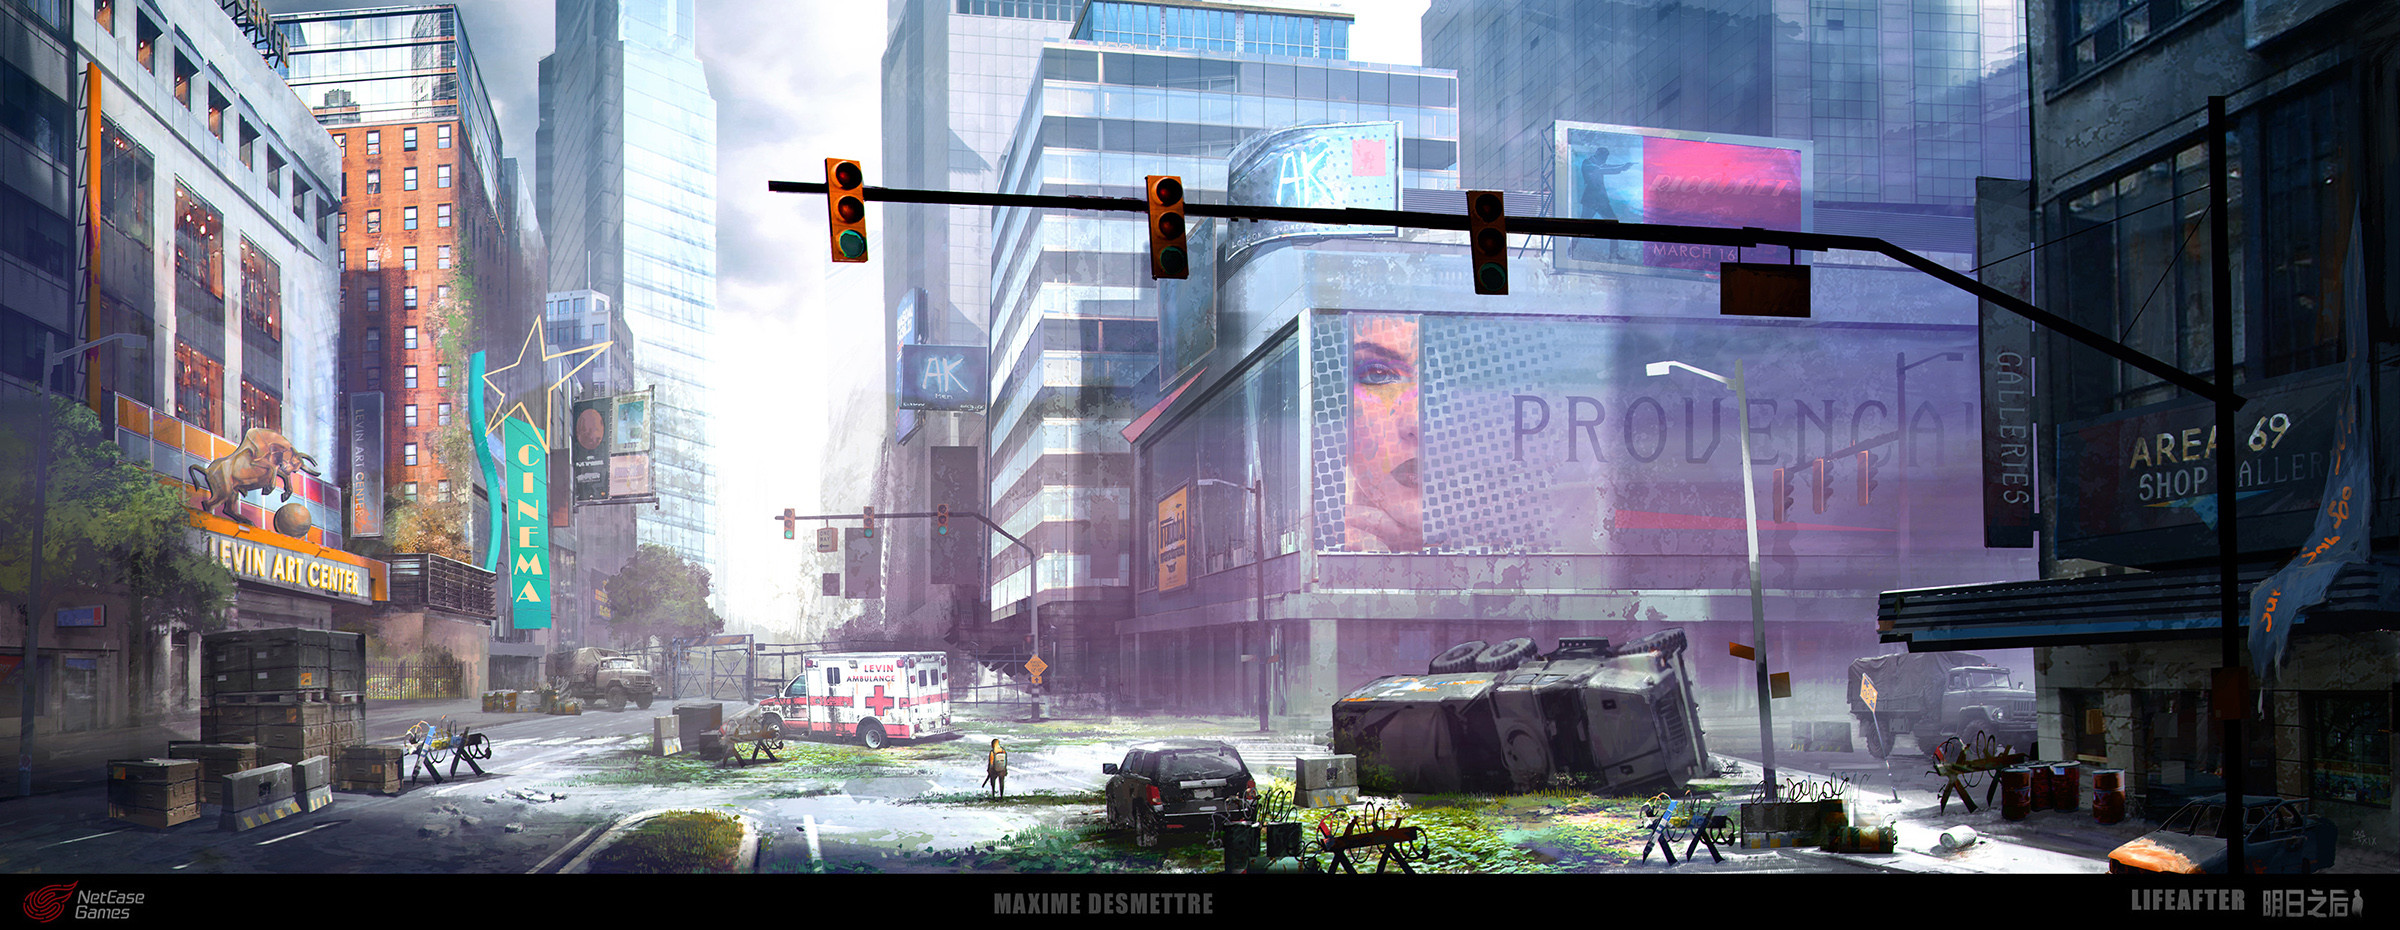 Life After - Levin City Crossroad Concept Art (2019)